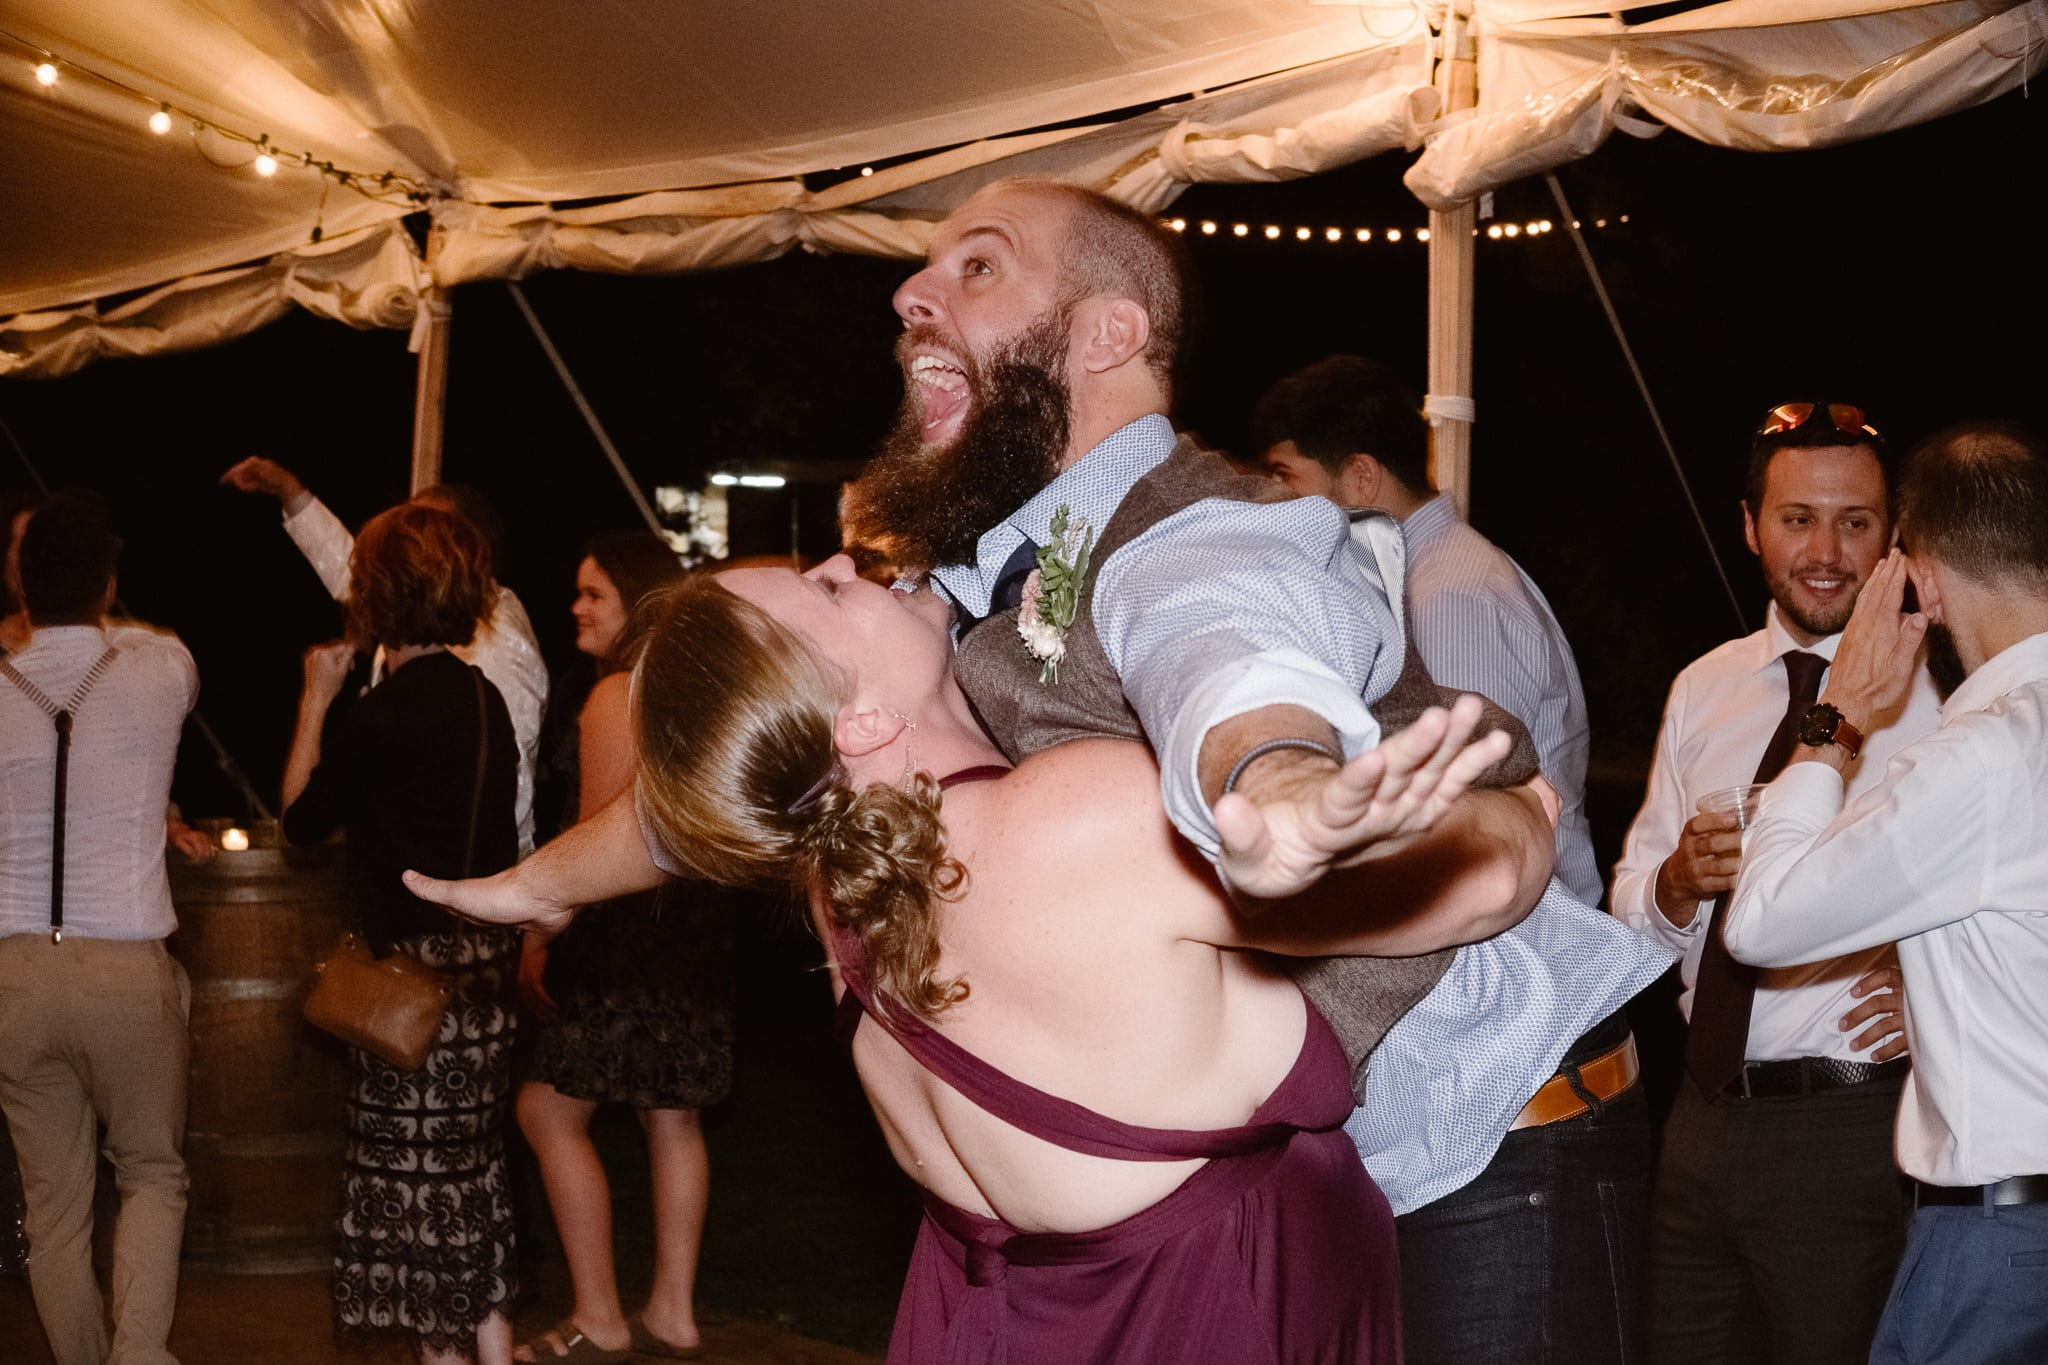 Lyons Farmette wedding photographer, Colorado intimate wedding photographer, wedding dance party